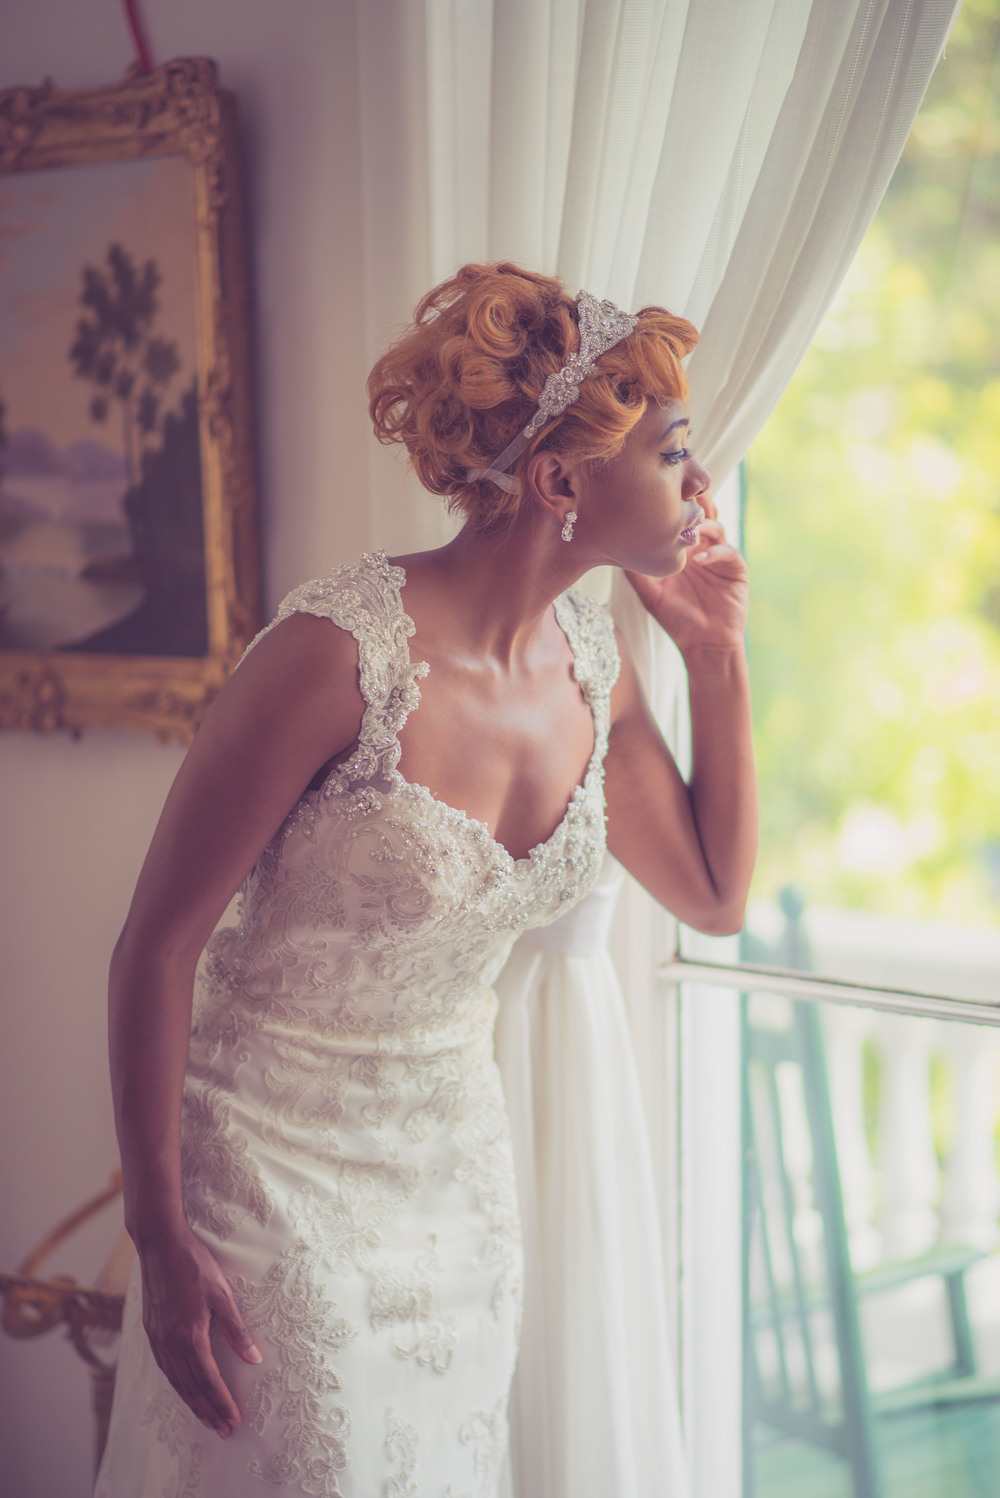 Bridal Session at the Bellamy Mansion